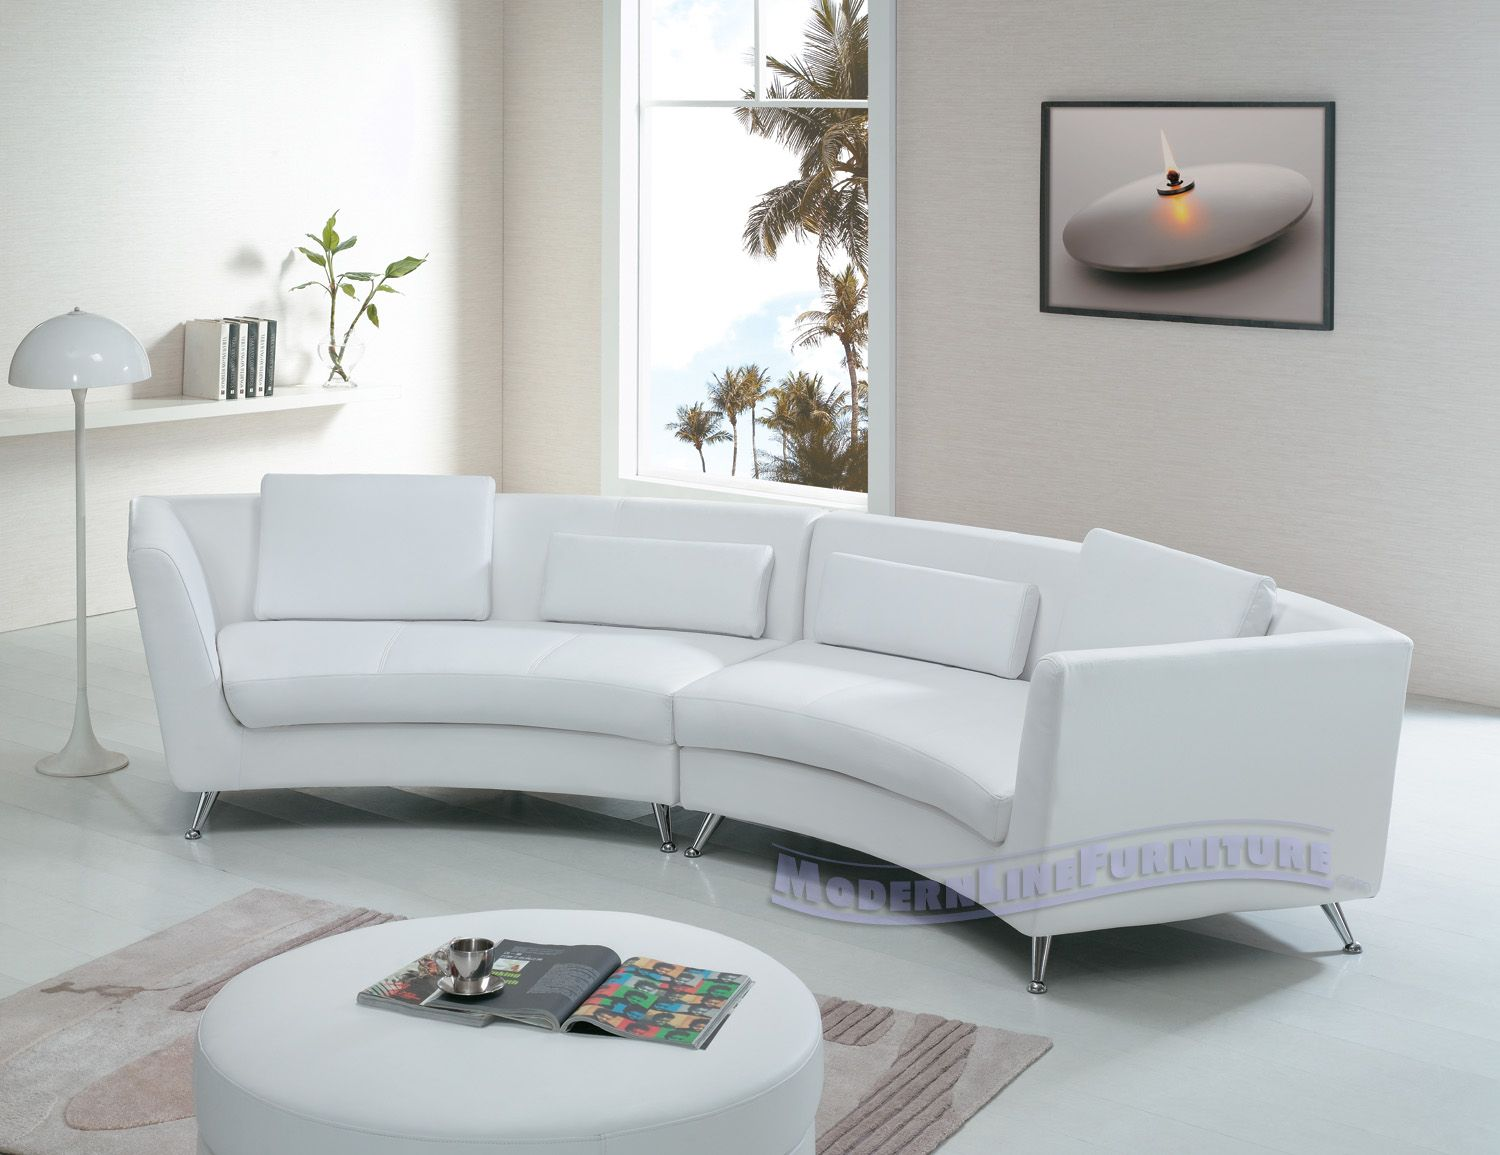 circular couches living room furniture rooms with dark brown couch oval sofa curved leather sofas in